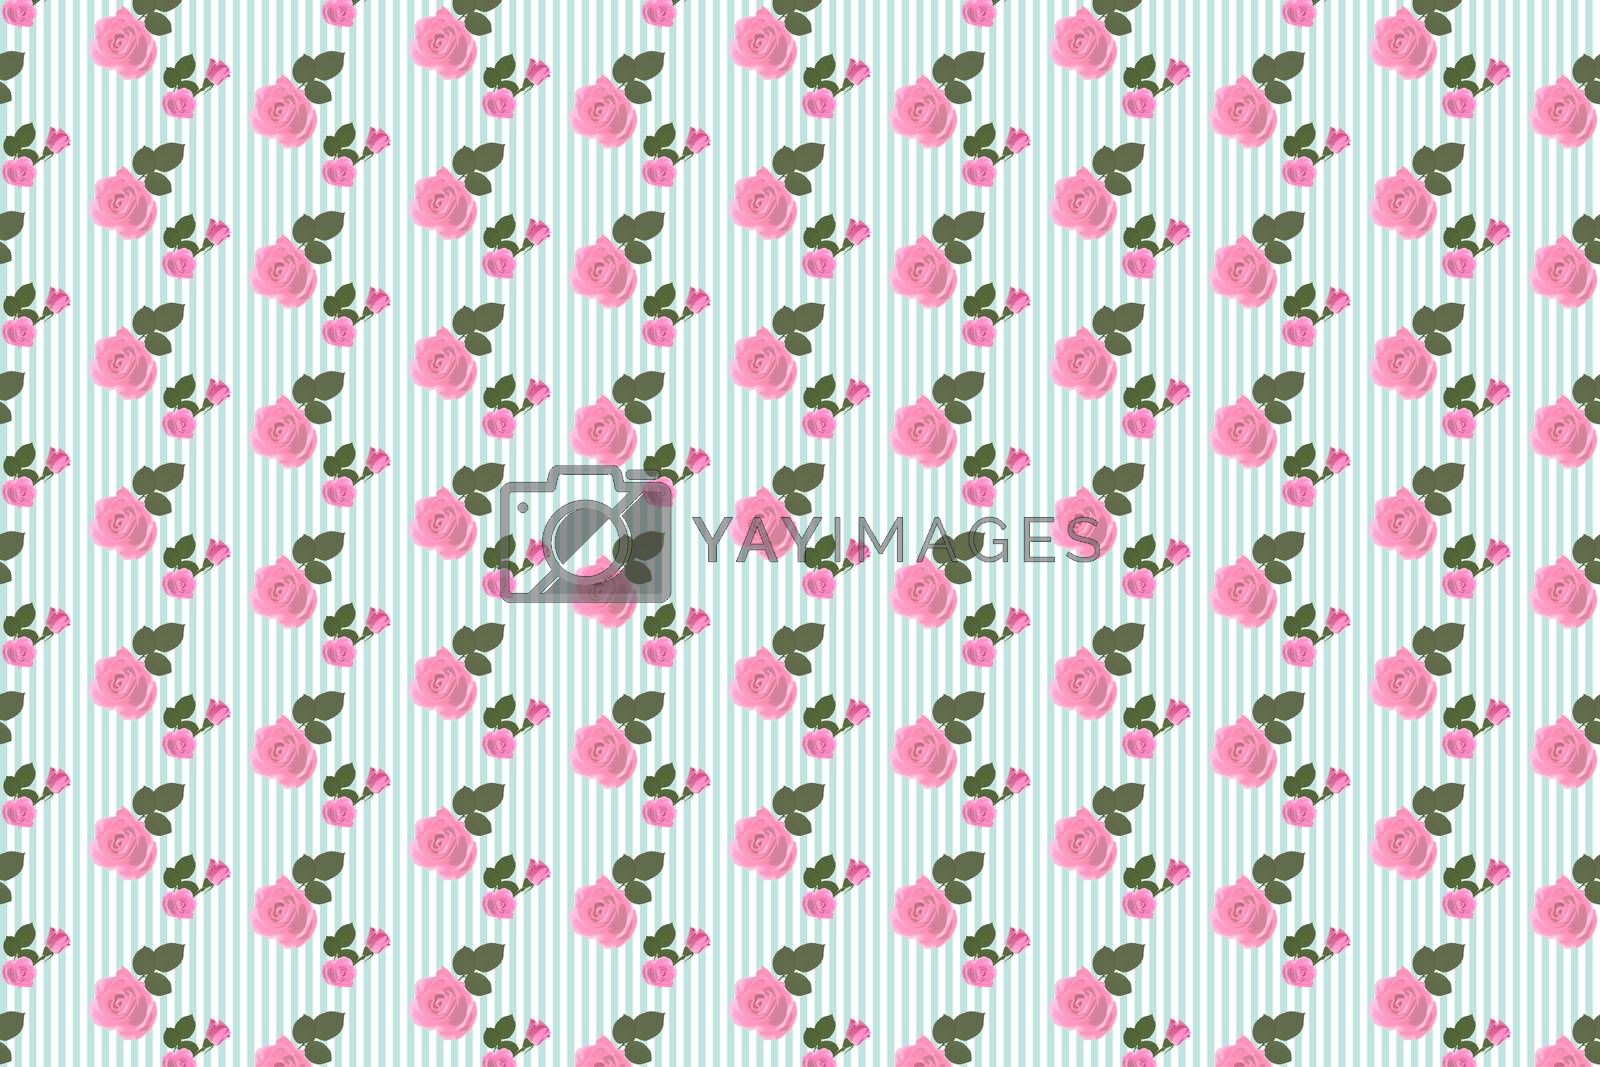 Royalty free image of Kitsch floral pattern wallpaper with roses by Wavebreakmedia